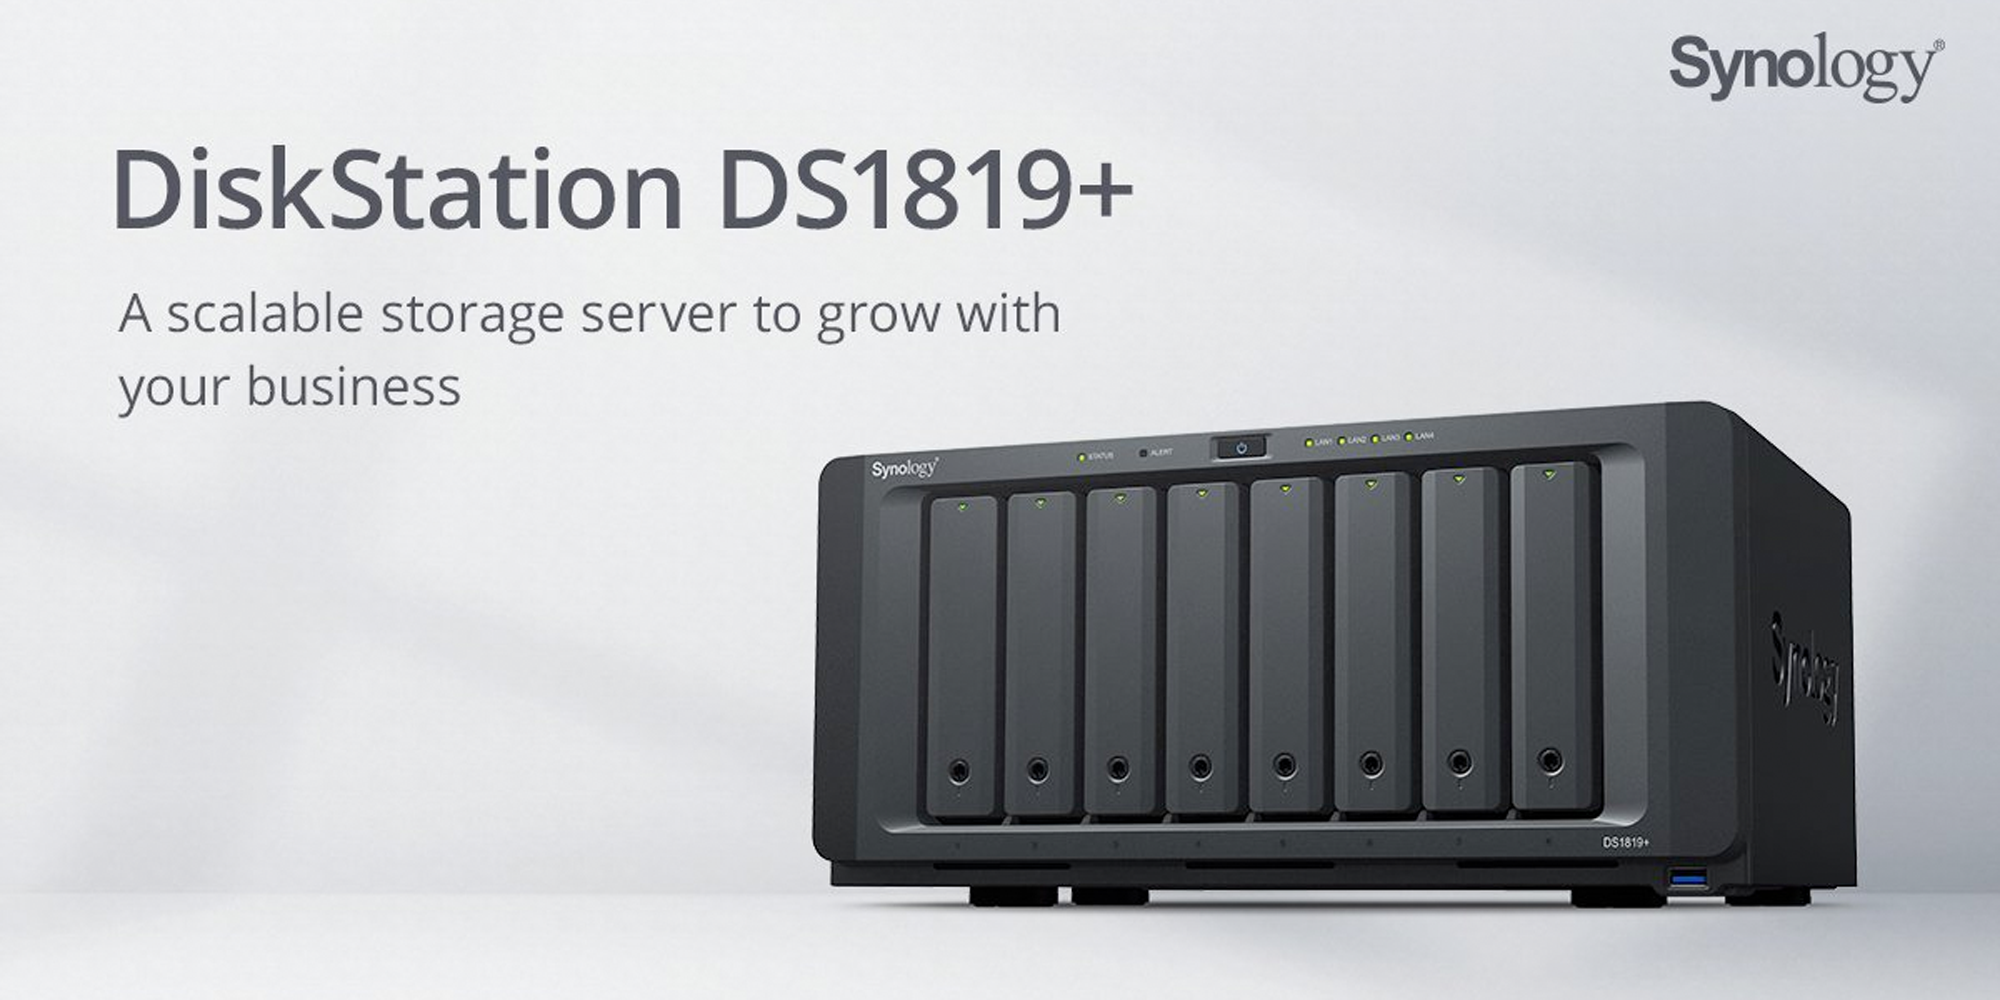 Synology S Ds1819 Can Have Up To 18 Storage Bays More